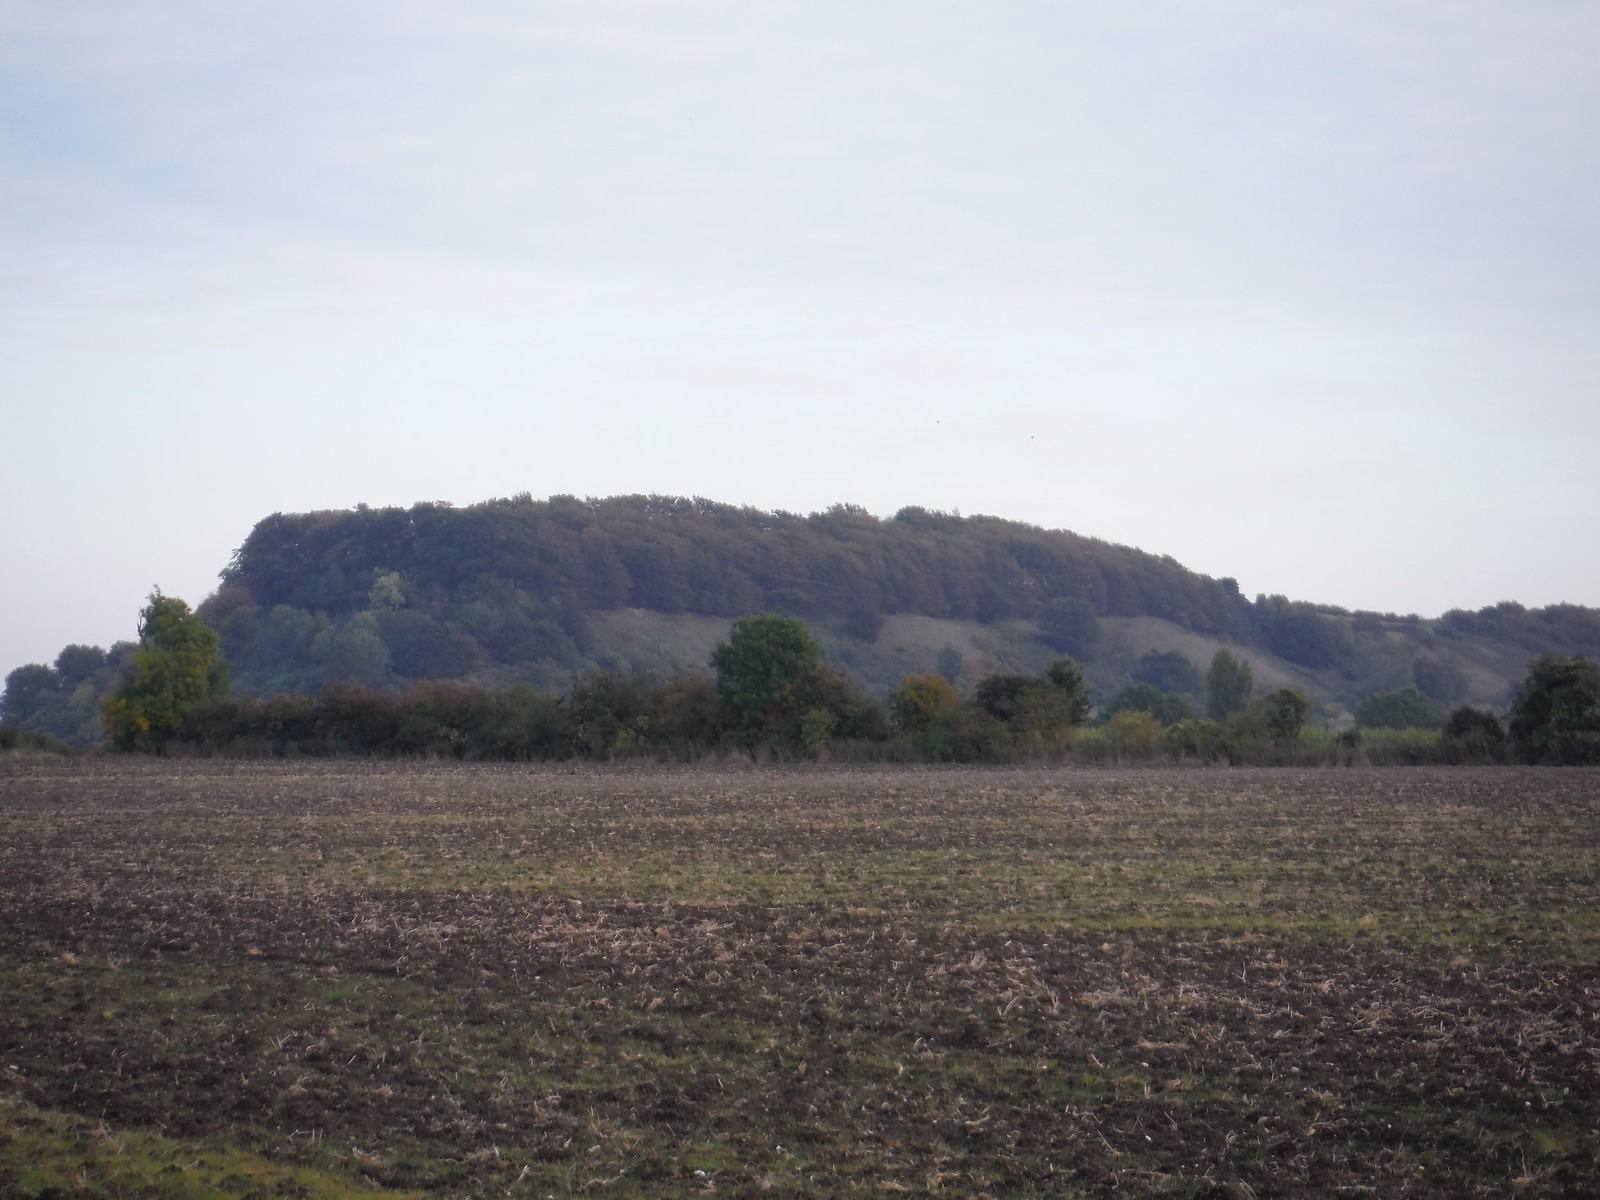 Sharpenhoe Iron Age Hillfort Site, from near Harlington SWC Walk 229 Leagrave to Harlington